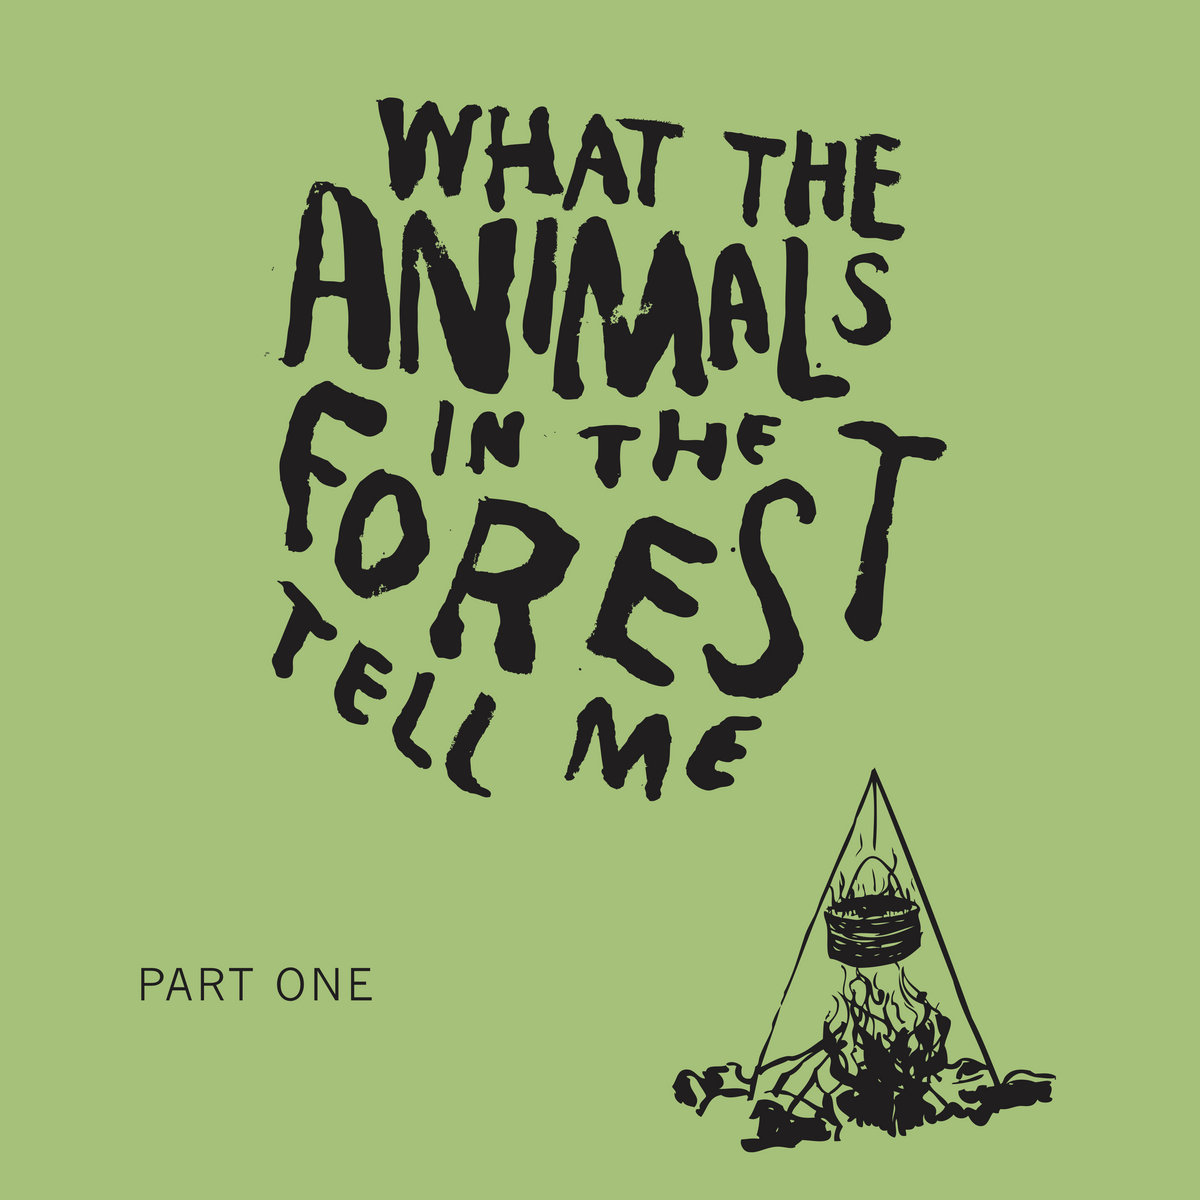 Ep. 5 | What the Animals in the Forest Tell Me (Part 1) by The Fruit Stare